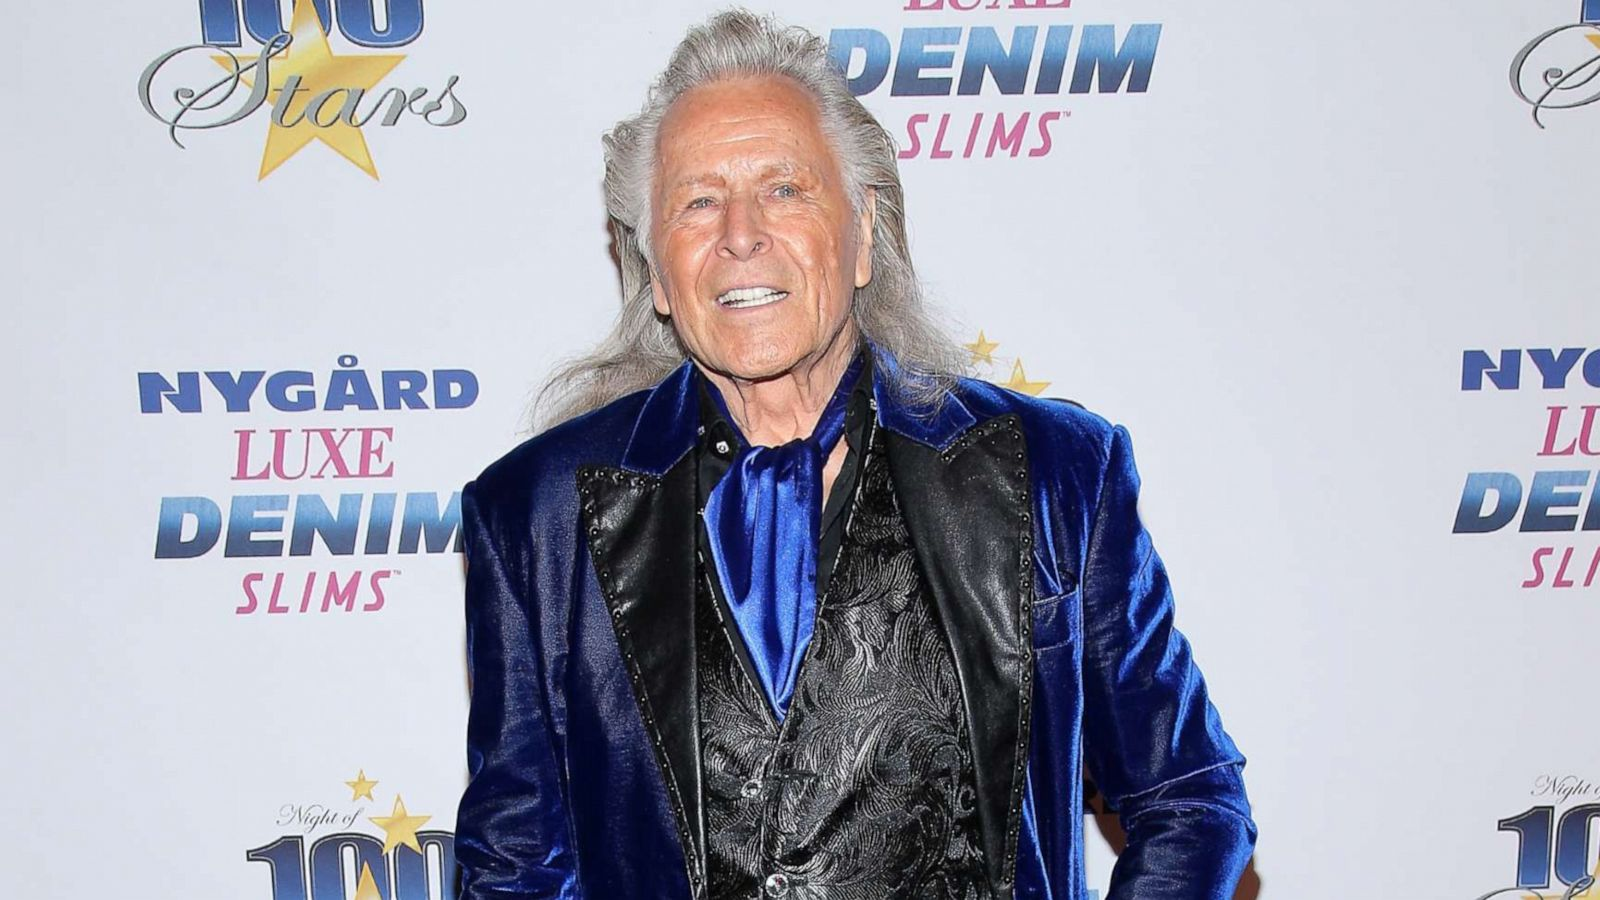 Nygard seeking punitive damages against accusers in amended suit